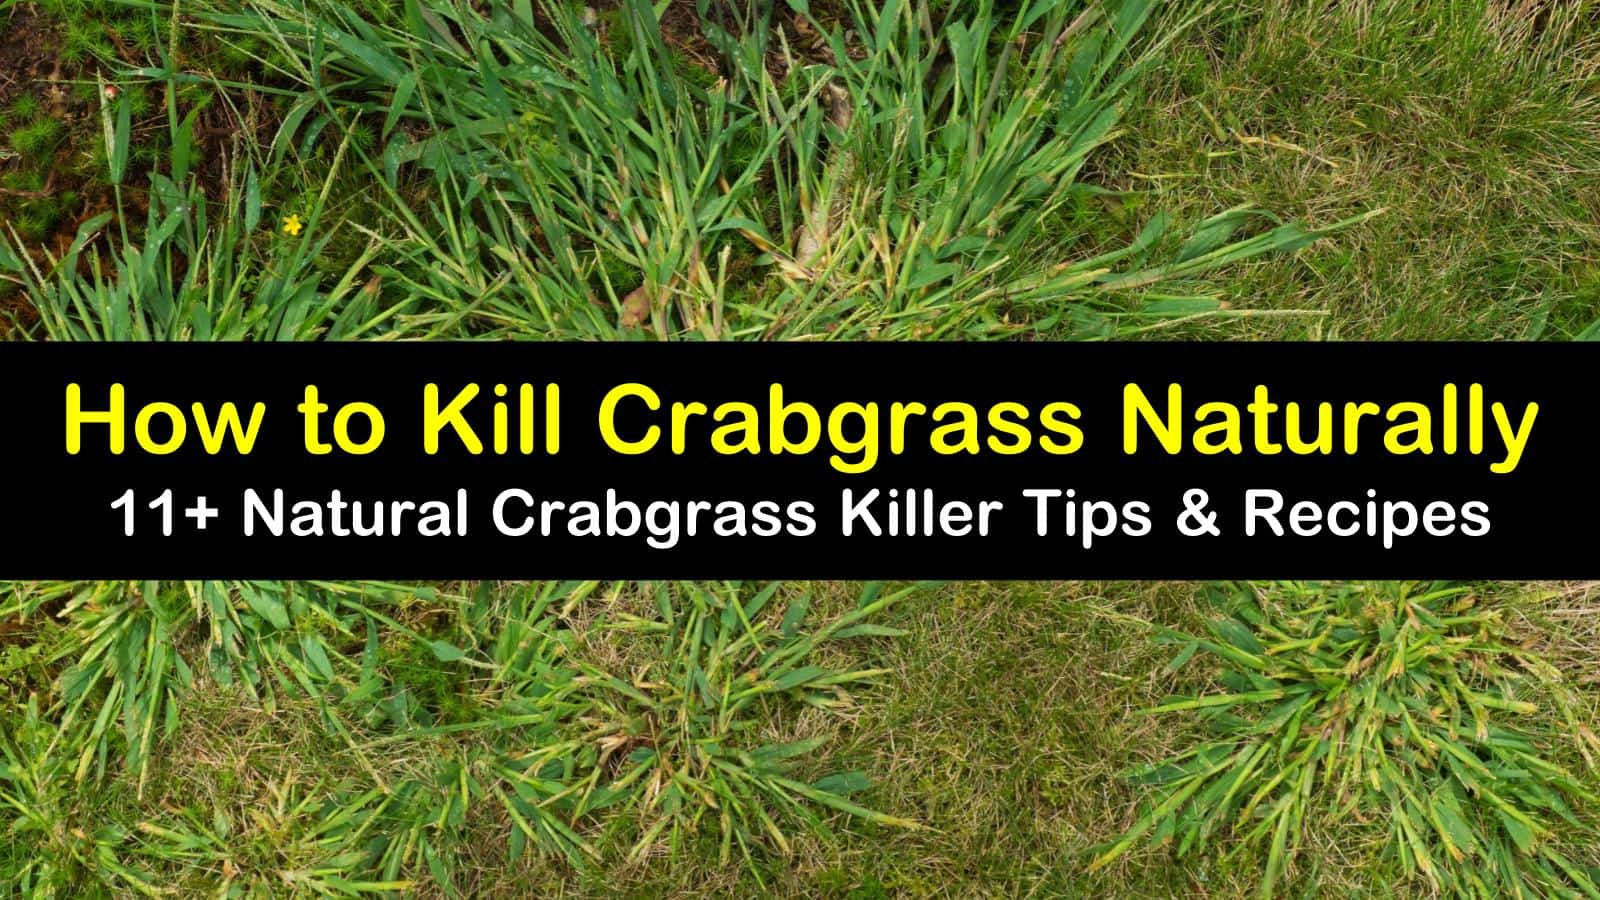 how to kill crabgrass titleimg1